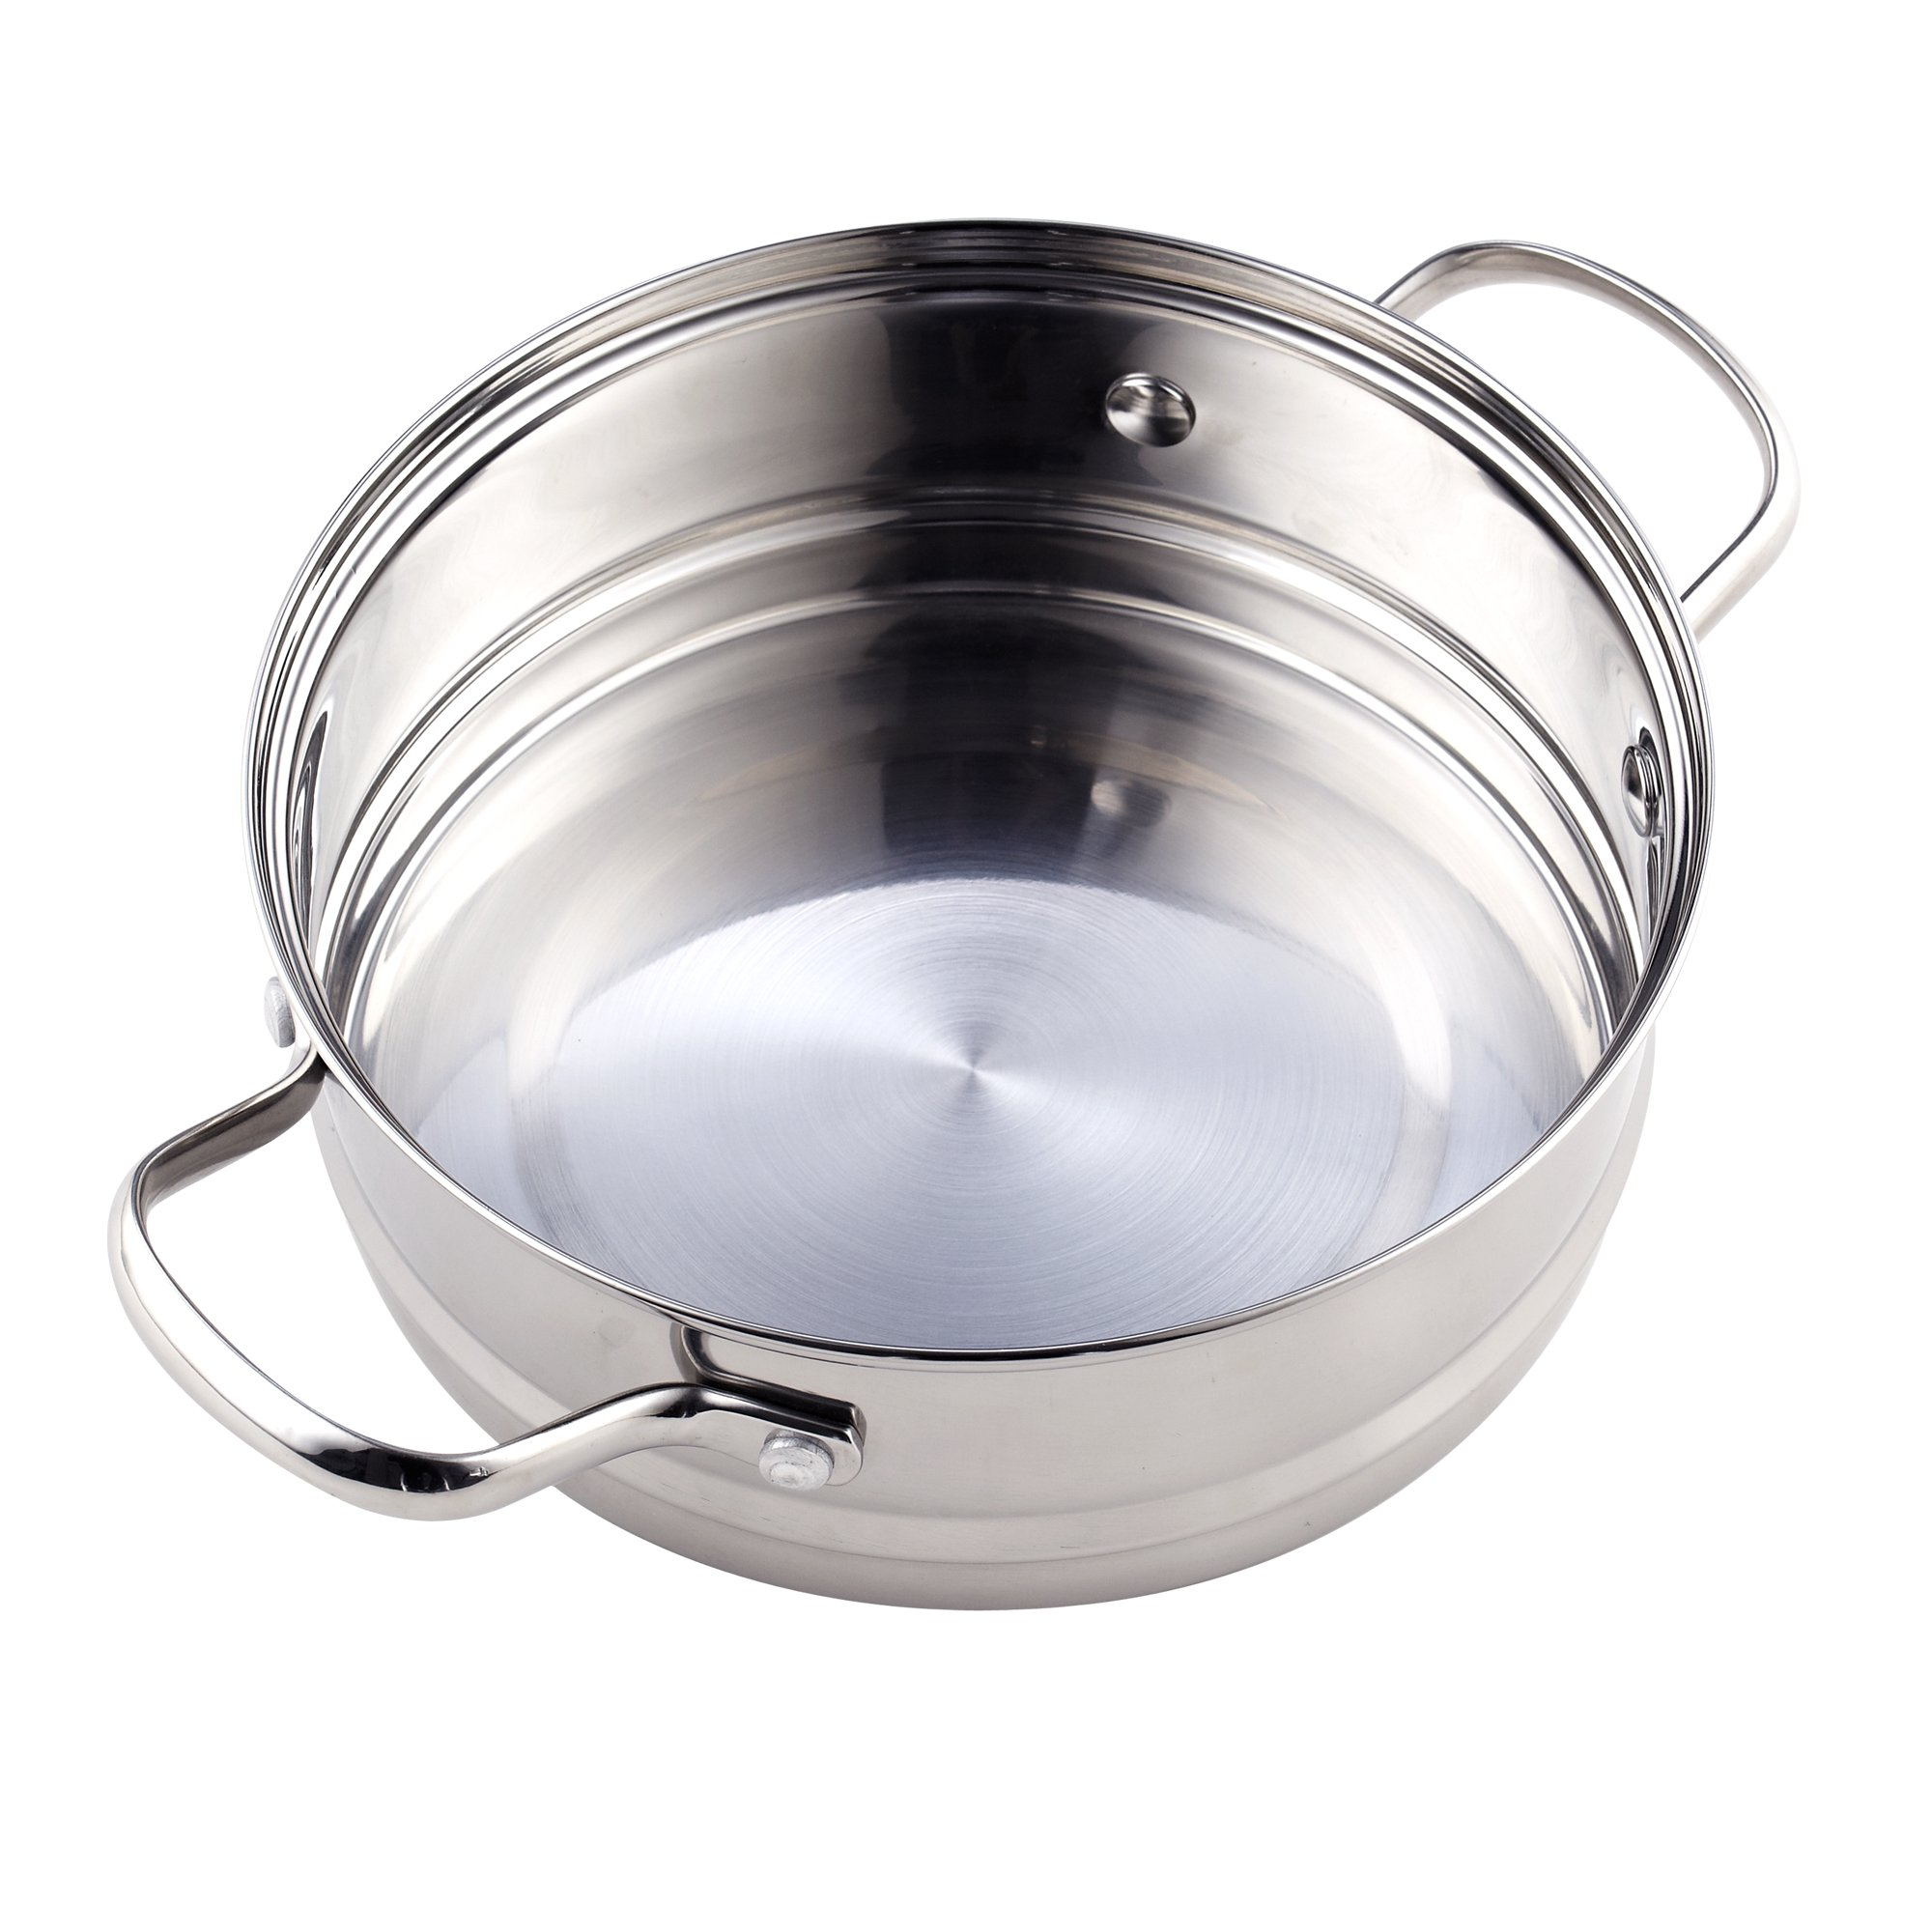 Cook N Home NC-00313 Double Boiler Steamer 4Qt silver by Cook N Home (Image #5)